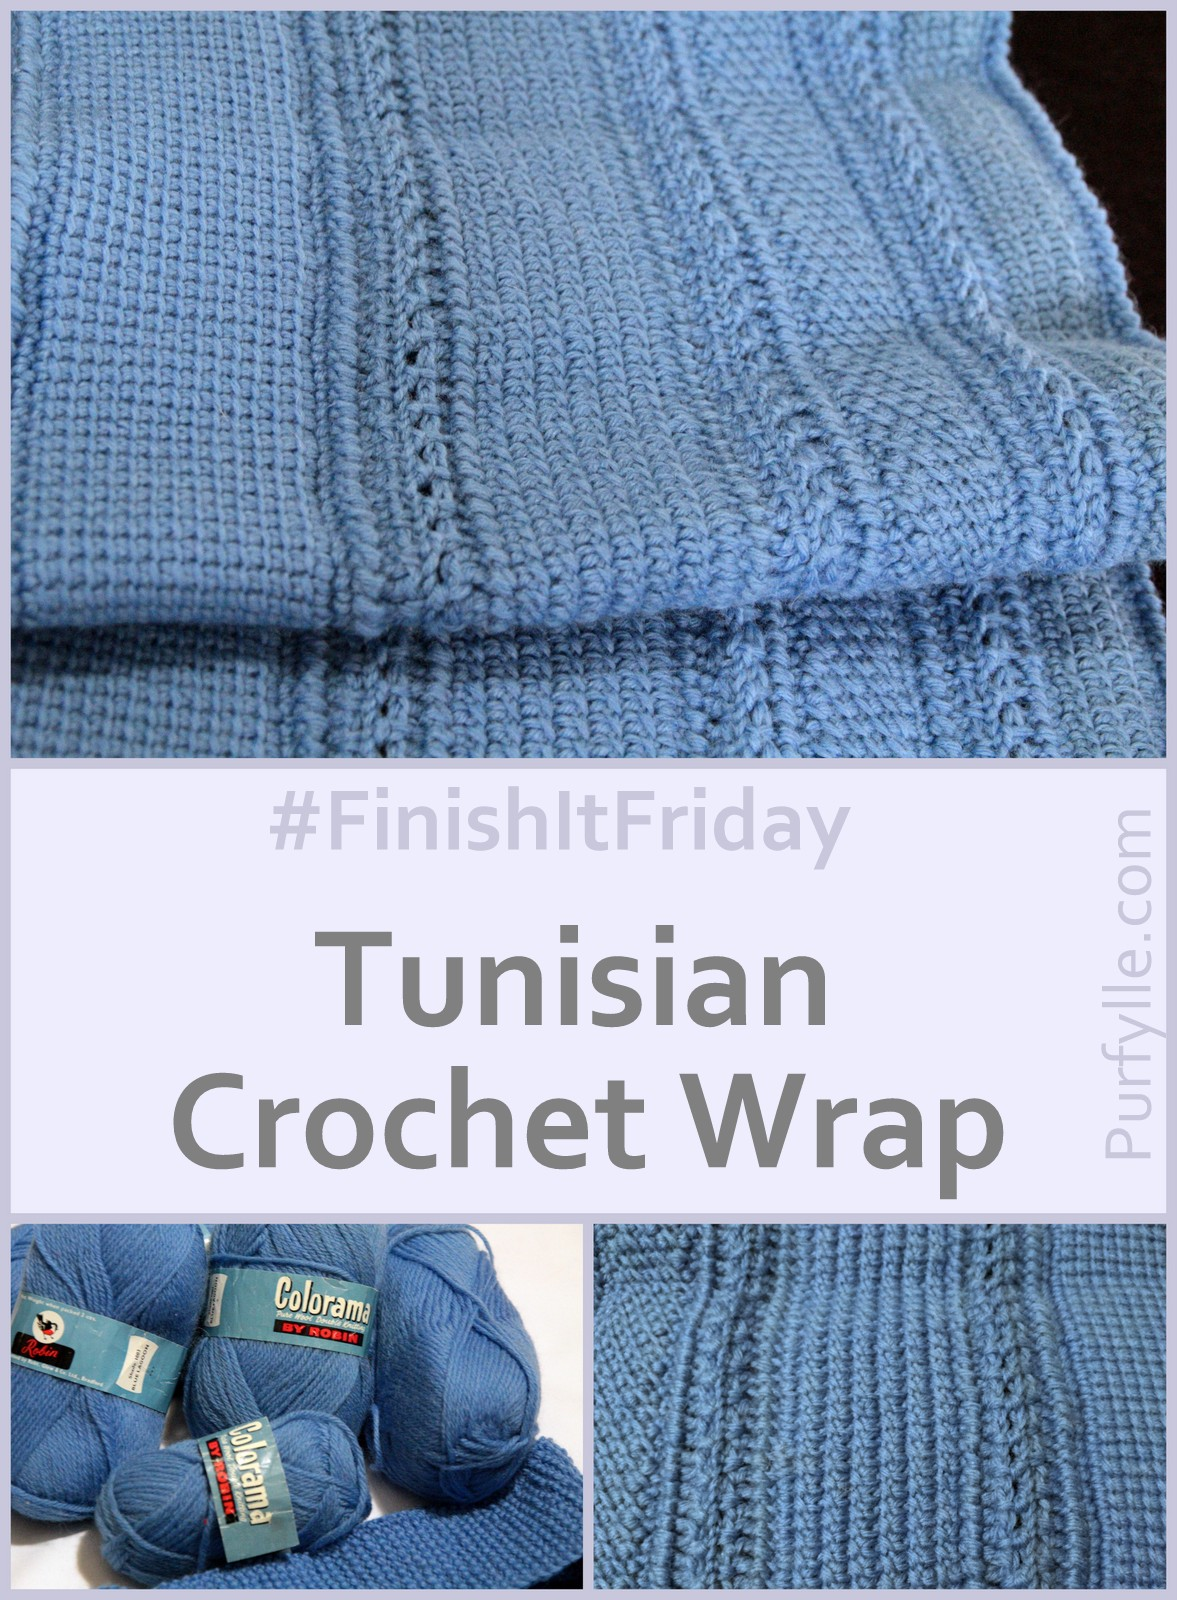 Tunisian Crochet Wrap worked in strips giving a unique textural effect